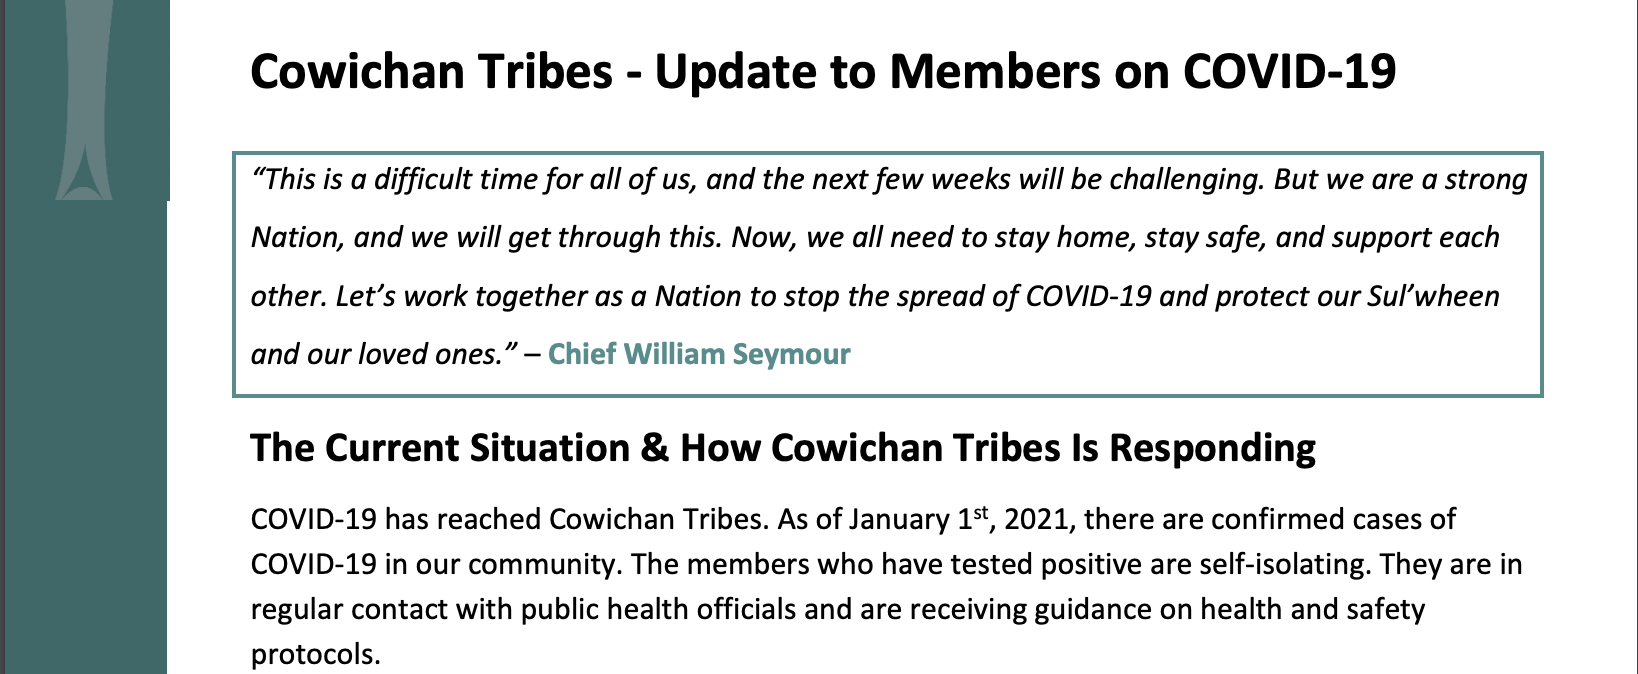 How Cowichan Tribes is Responding to COVID-19 - January 1, 2021